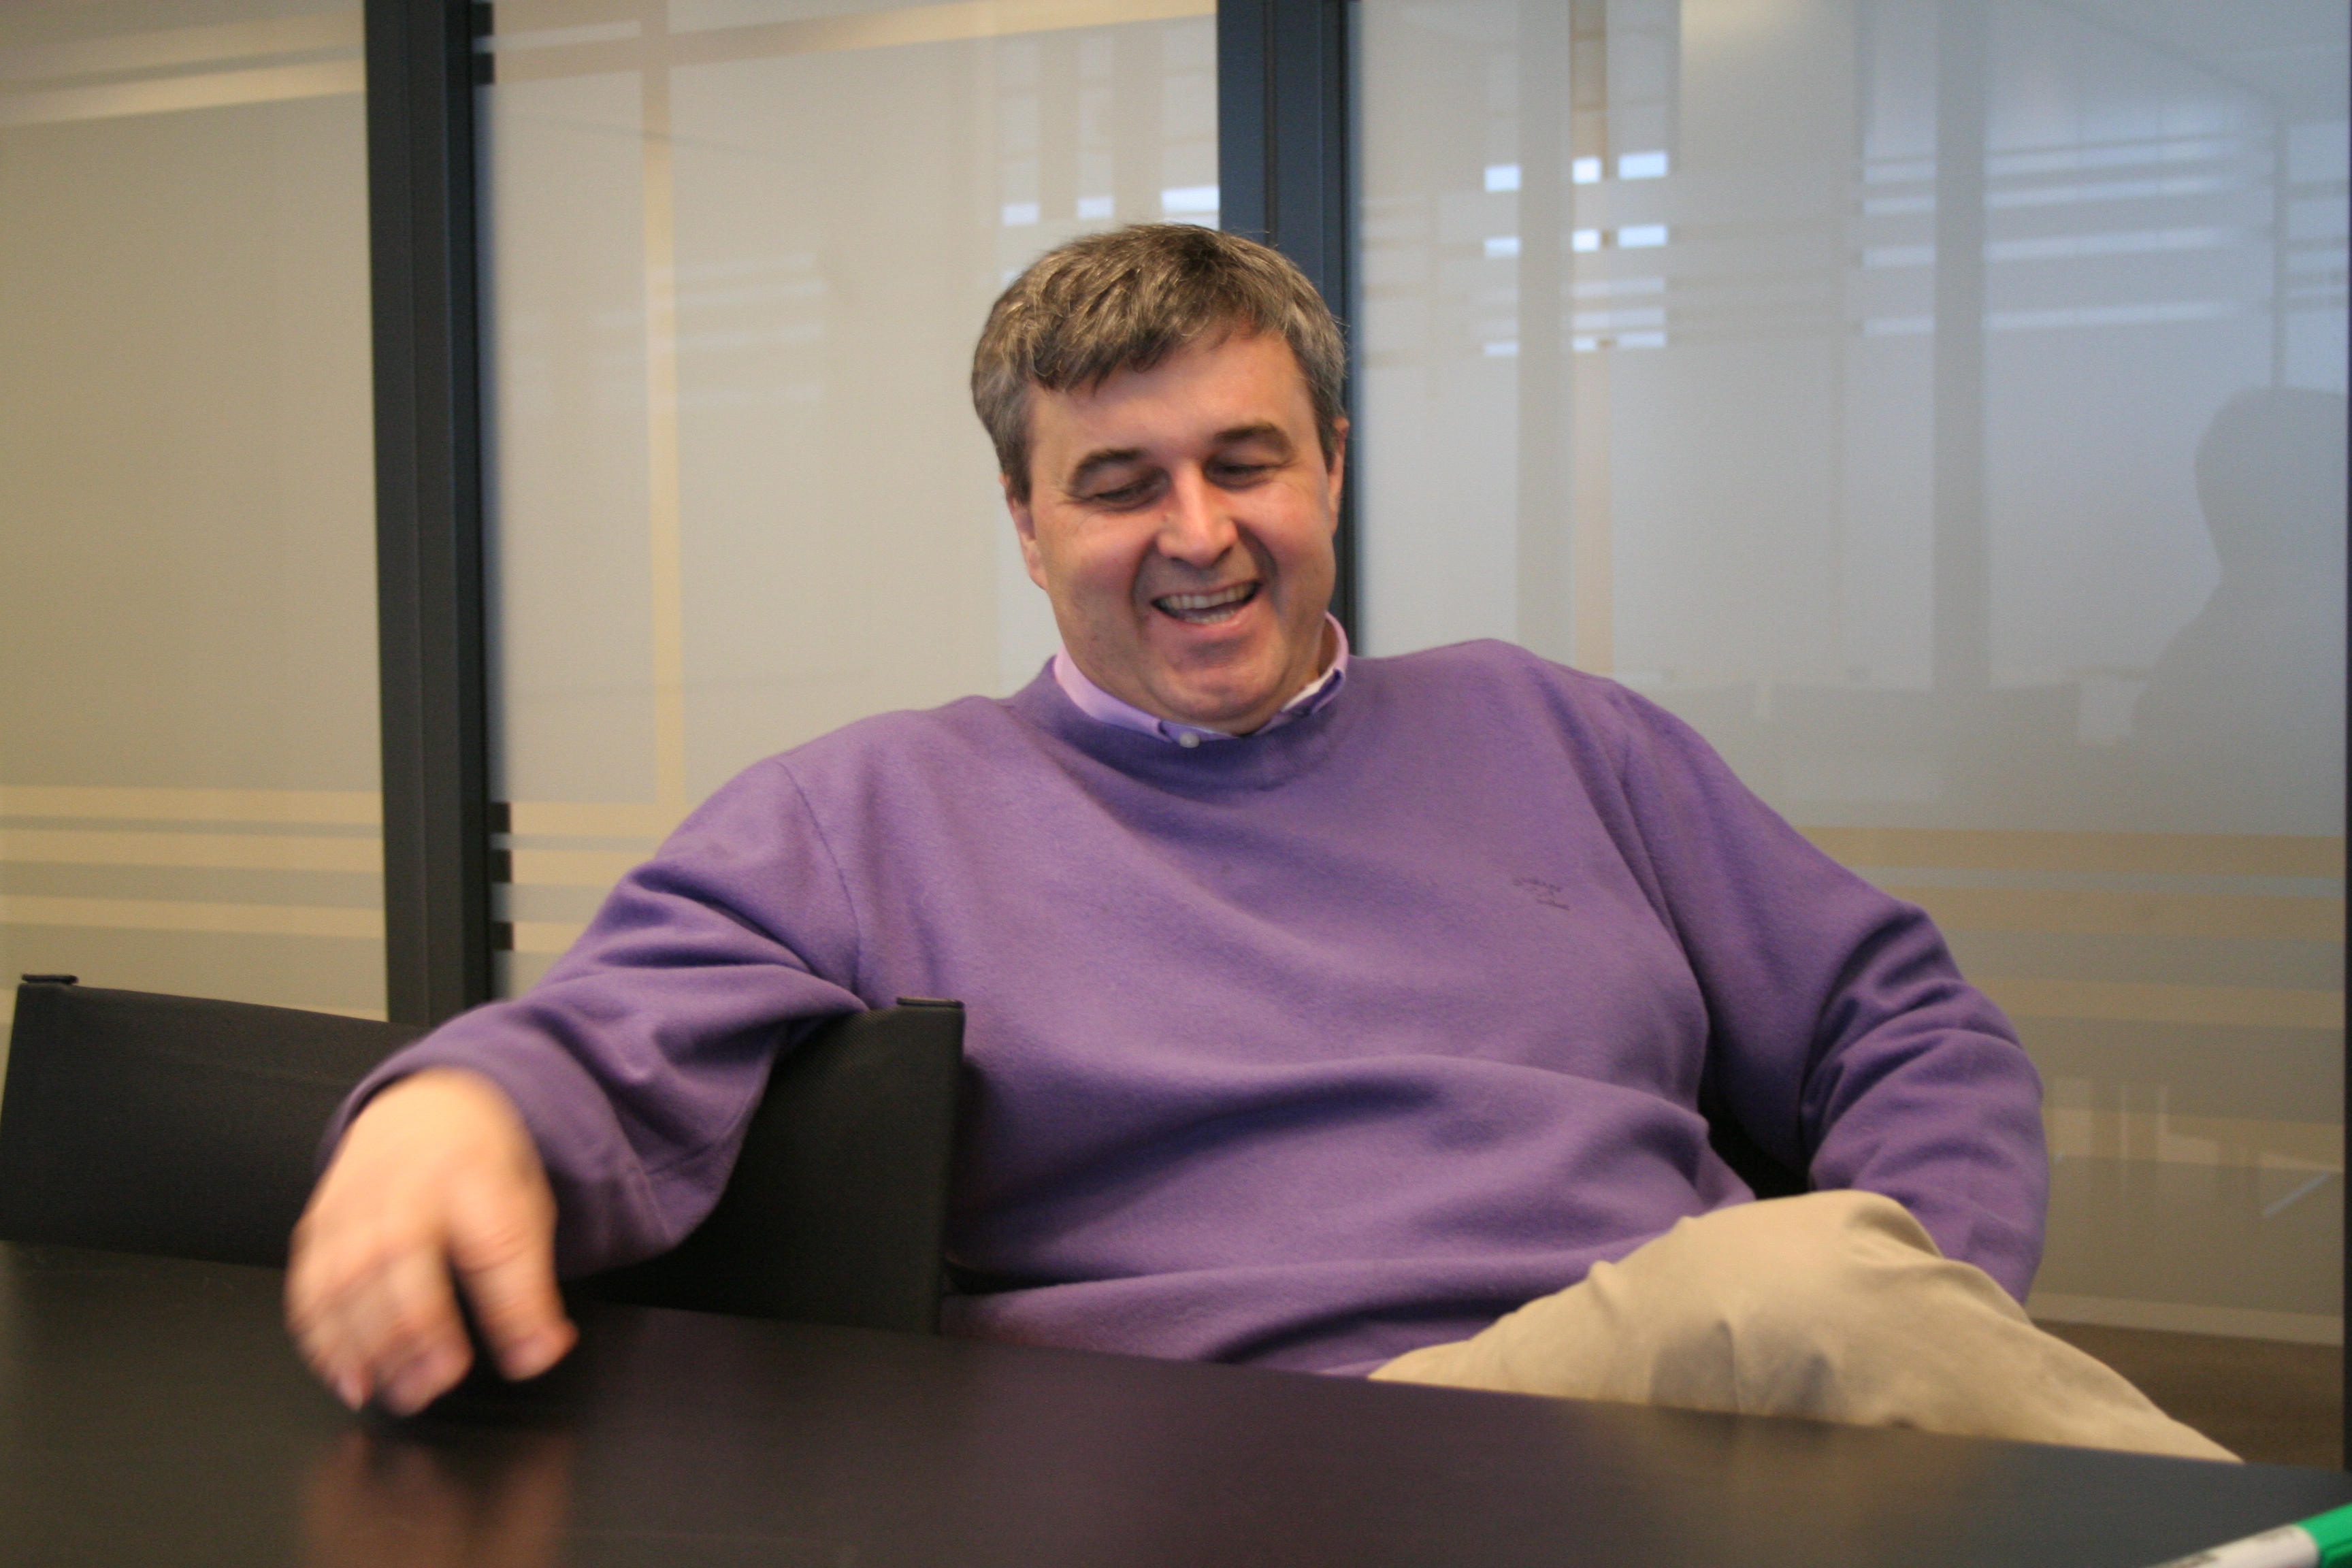 Frank Bekkers, the founder and CEO of Mobile Vikings, hopes he'll have the last laugh against mobile incumbents.